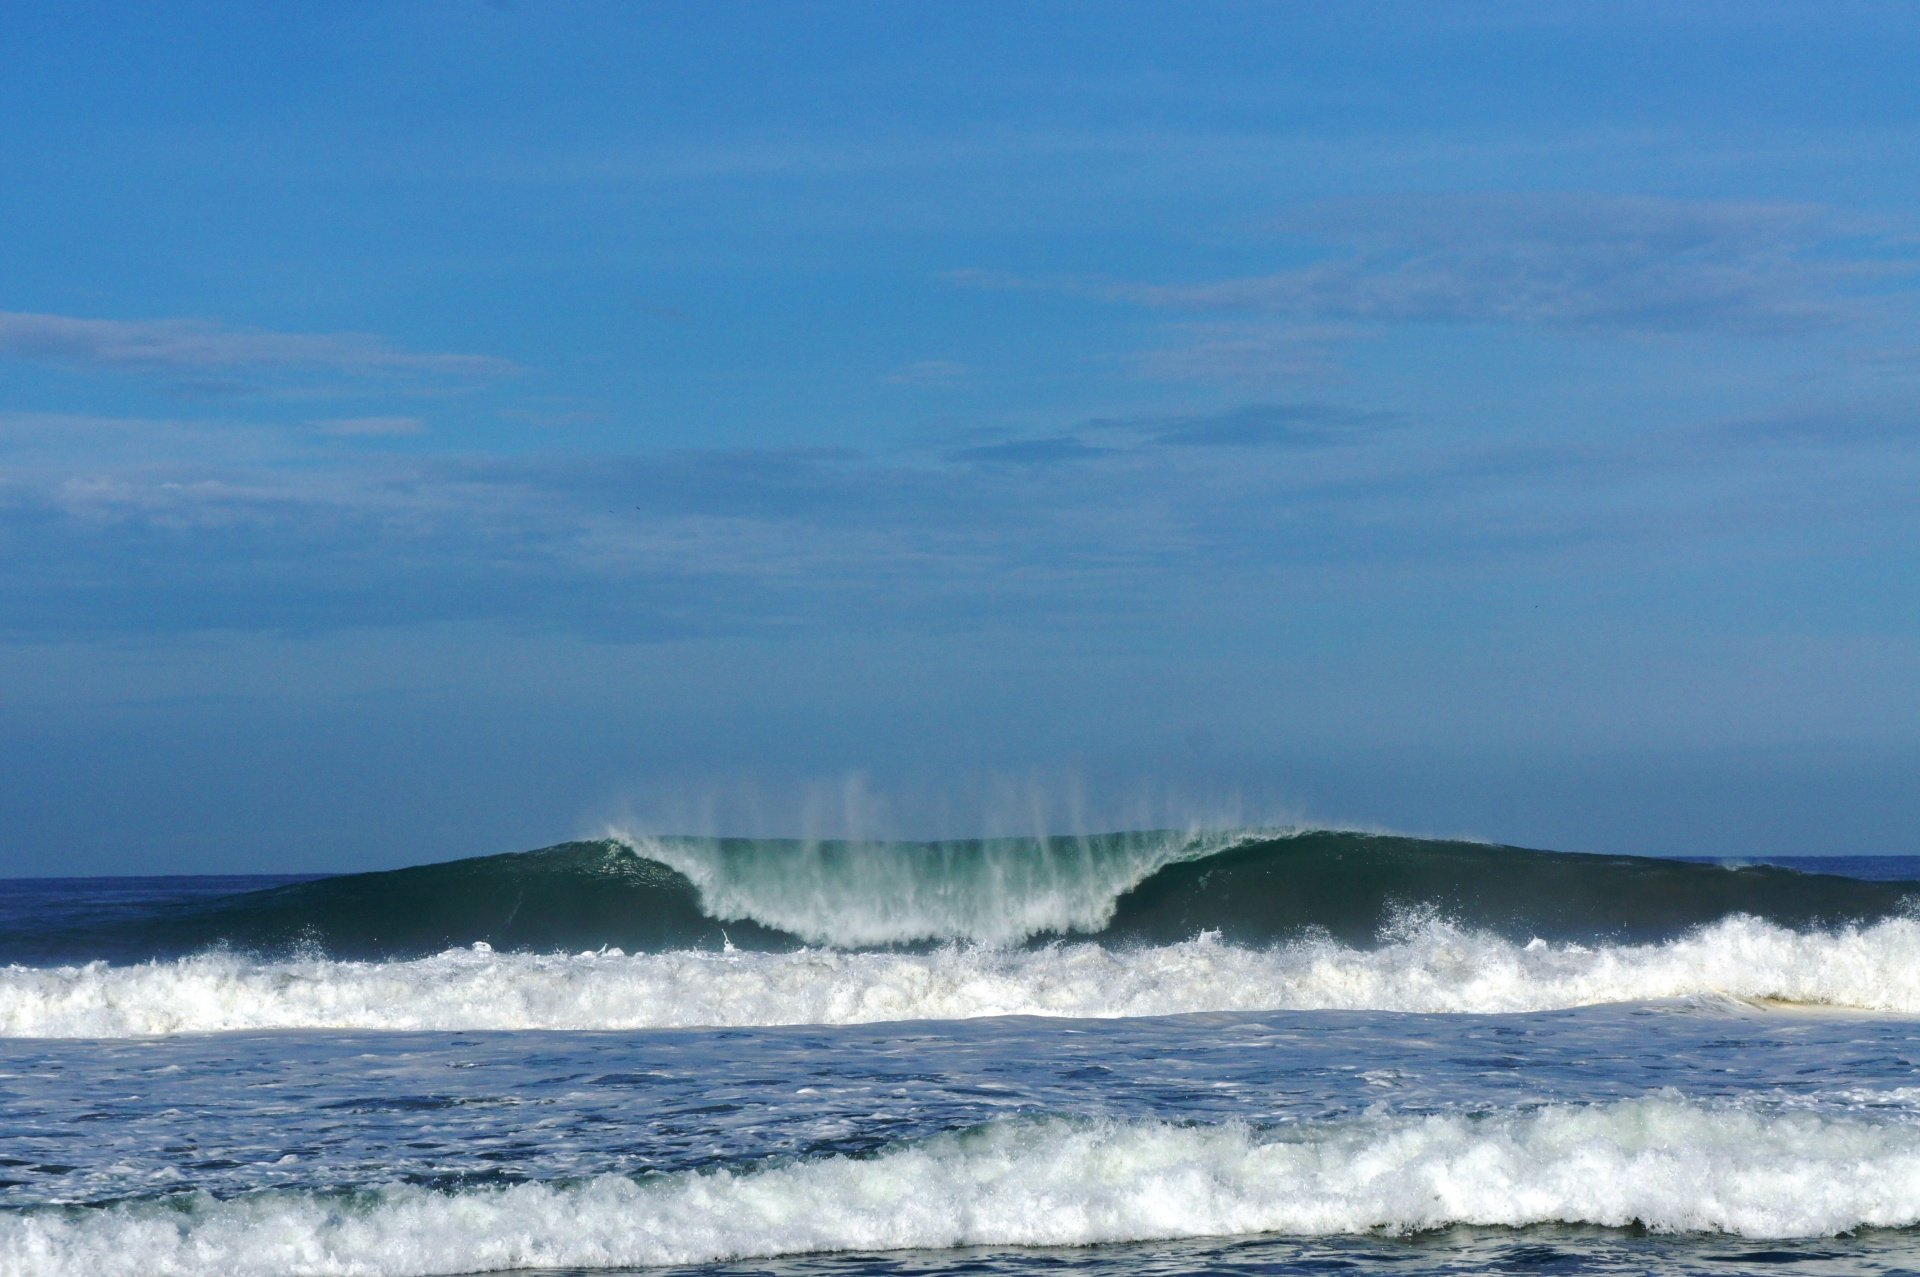 Jambo's photo of Puerto Escondido